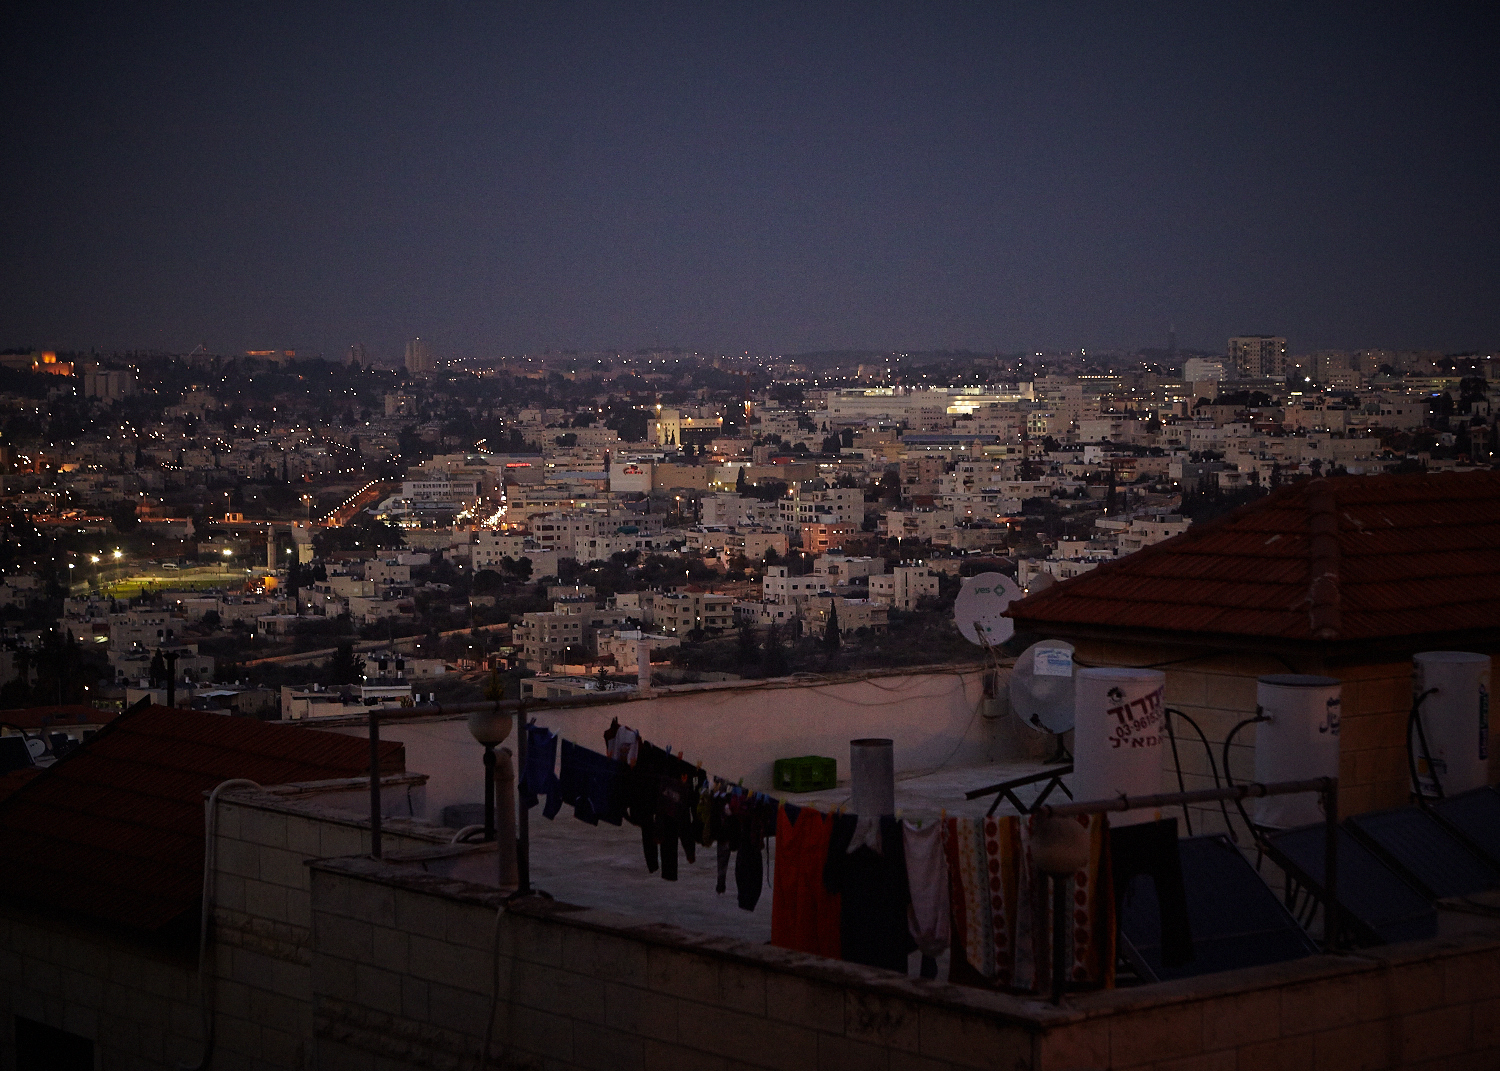 20140105_Honey_&_Co_Jerusalem_1300_Patricia_Niven.jpg